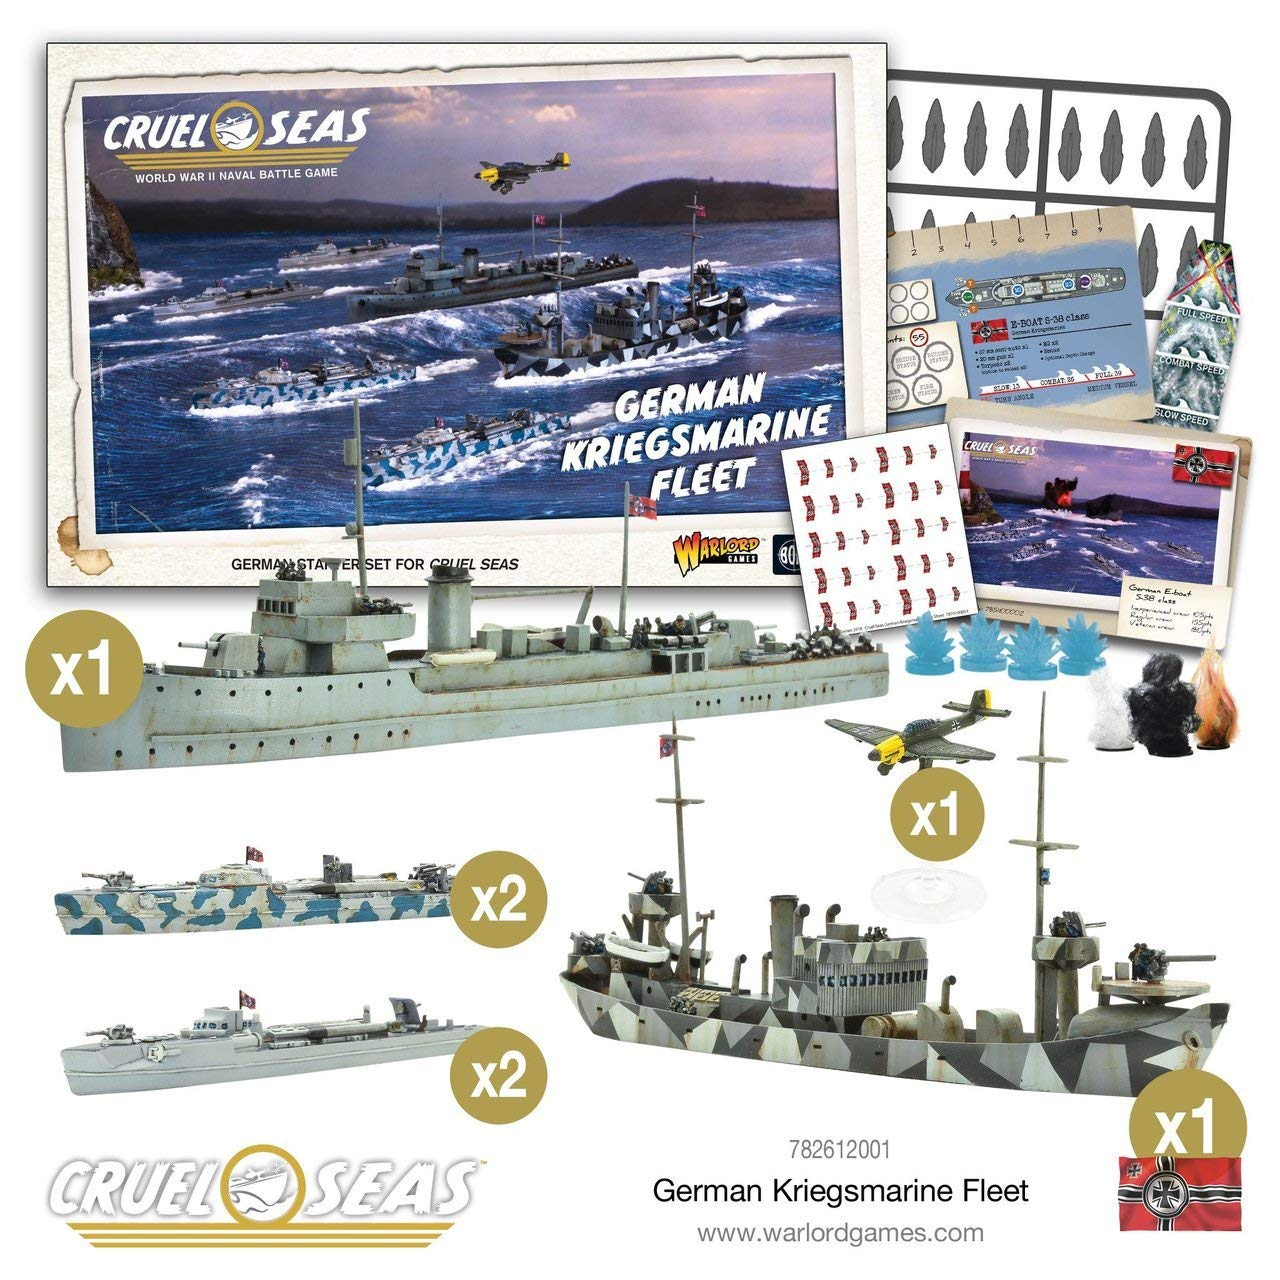 Cruel Seas German Kriegsmarine Fleet Starter Set, World War II Naval Battle Game ... by Cruel Seas (Image #1)